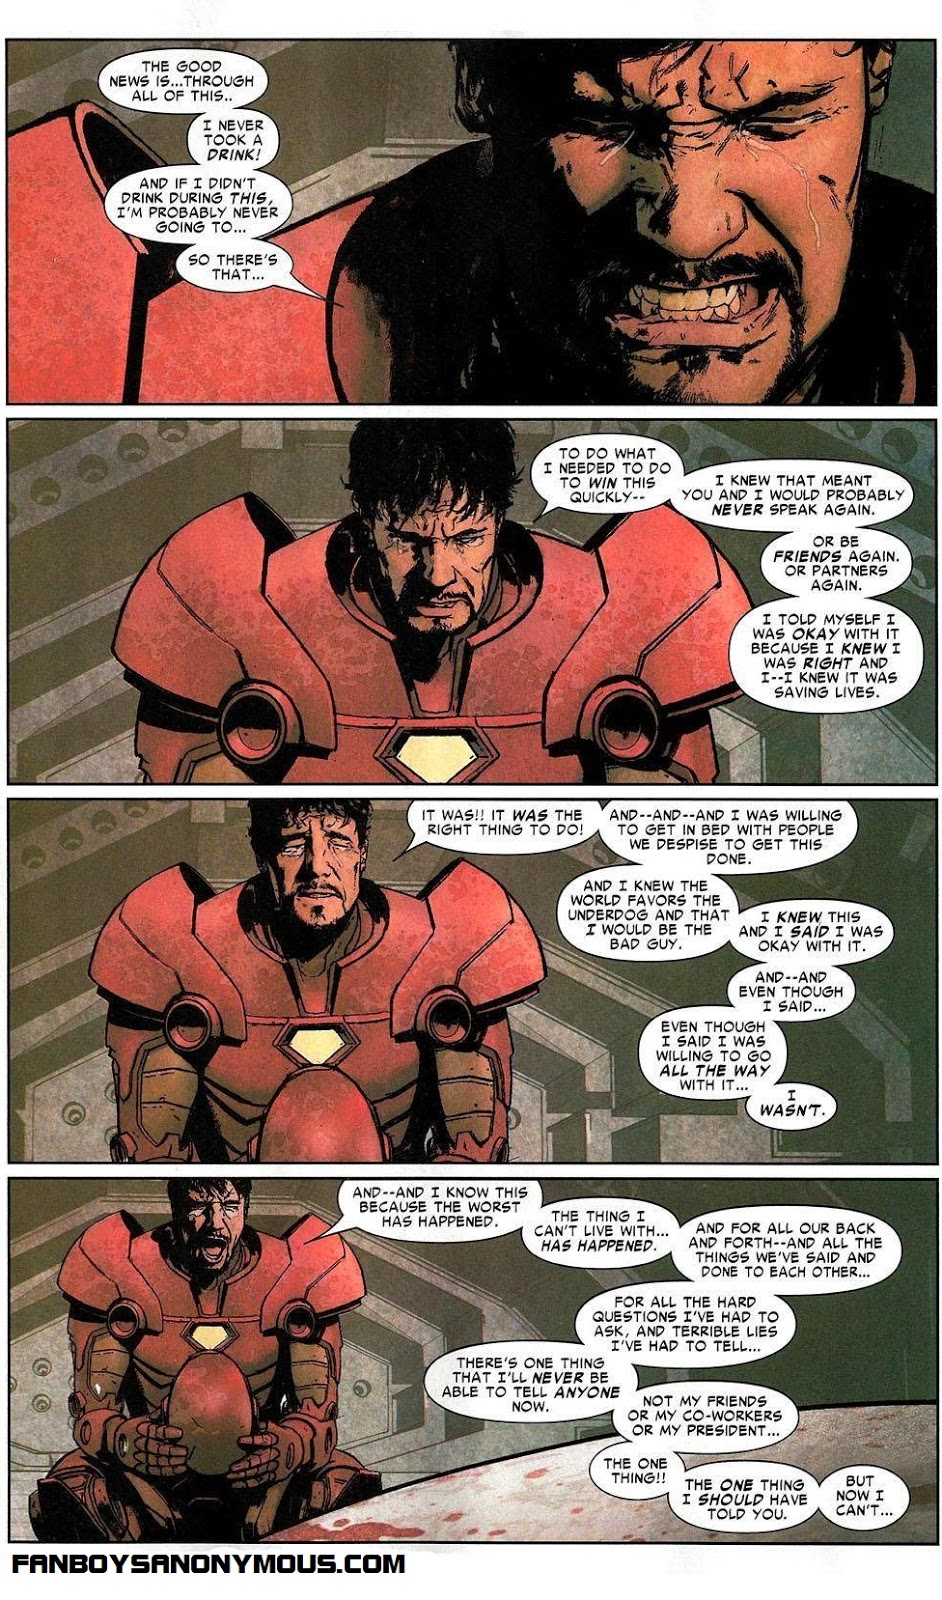 Iron Man Tony Stark confesses his guilt after the assassination of Captain America